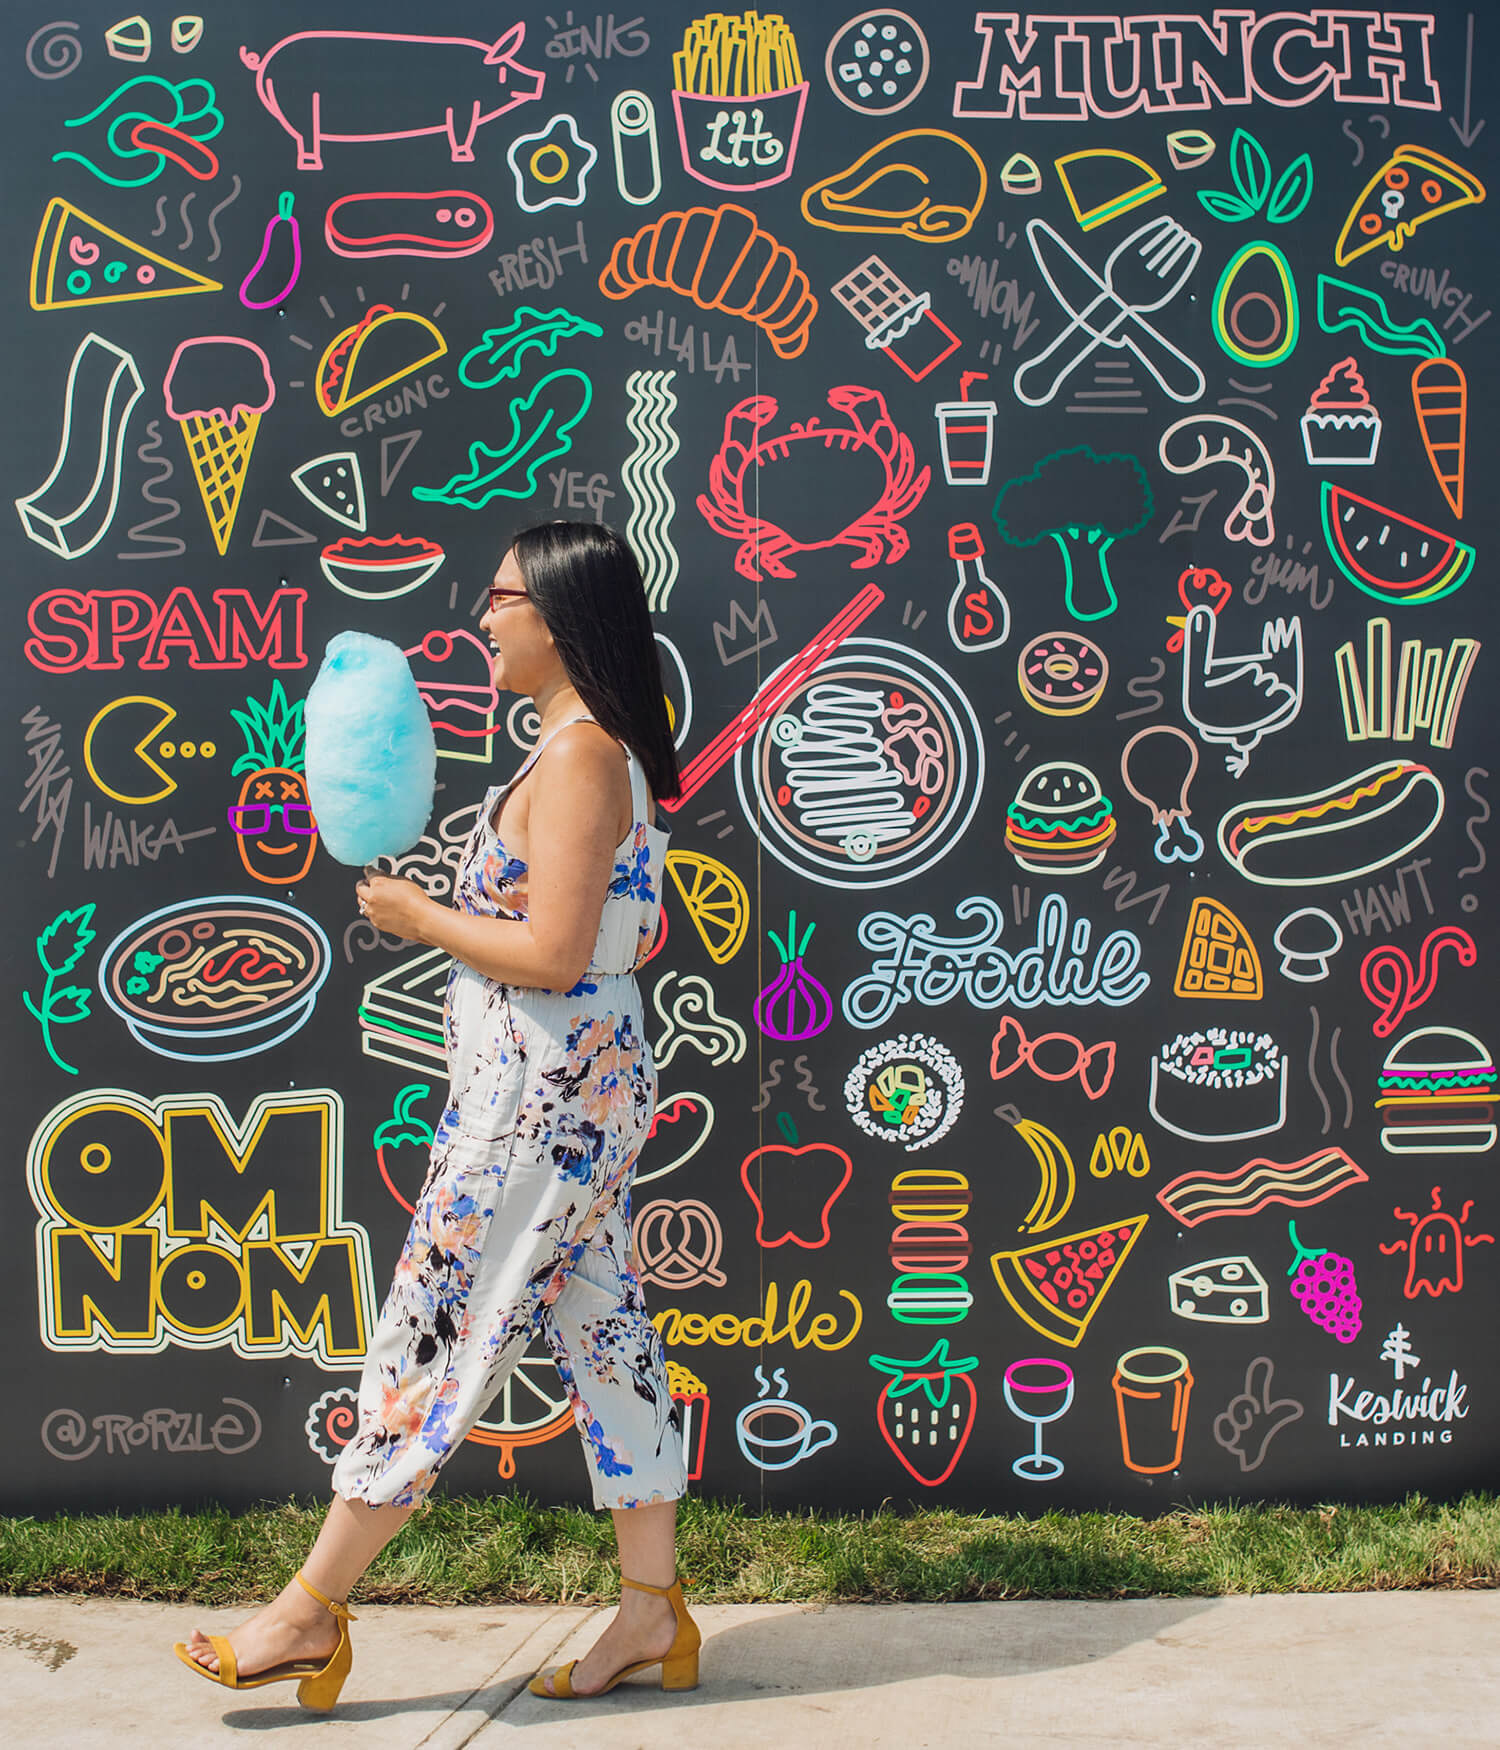 Keswick Landing - Instagrammable Walls - Explore Edmonton - Windermere - Rory Lee YEG Food Doodle